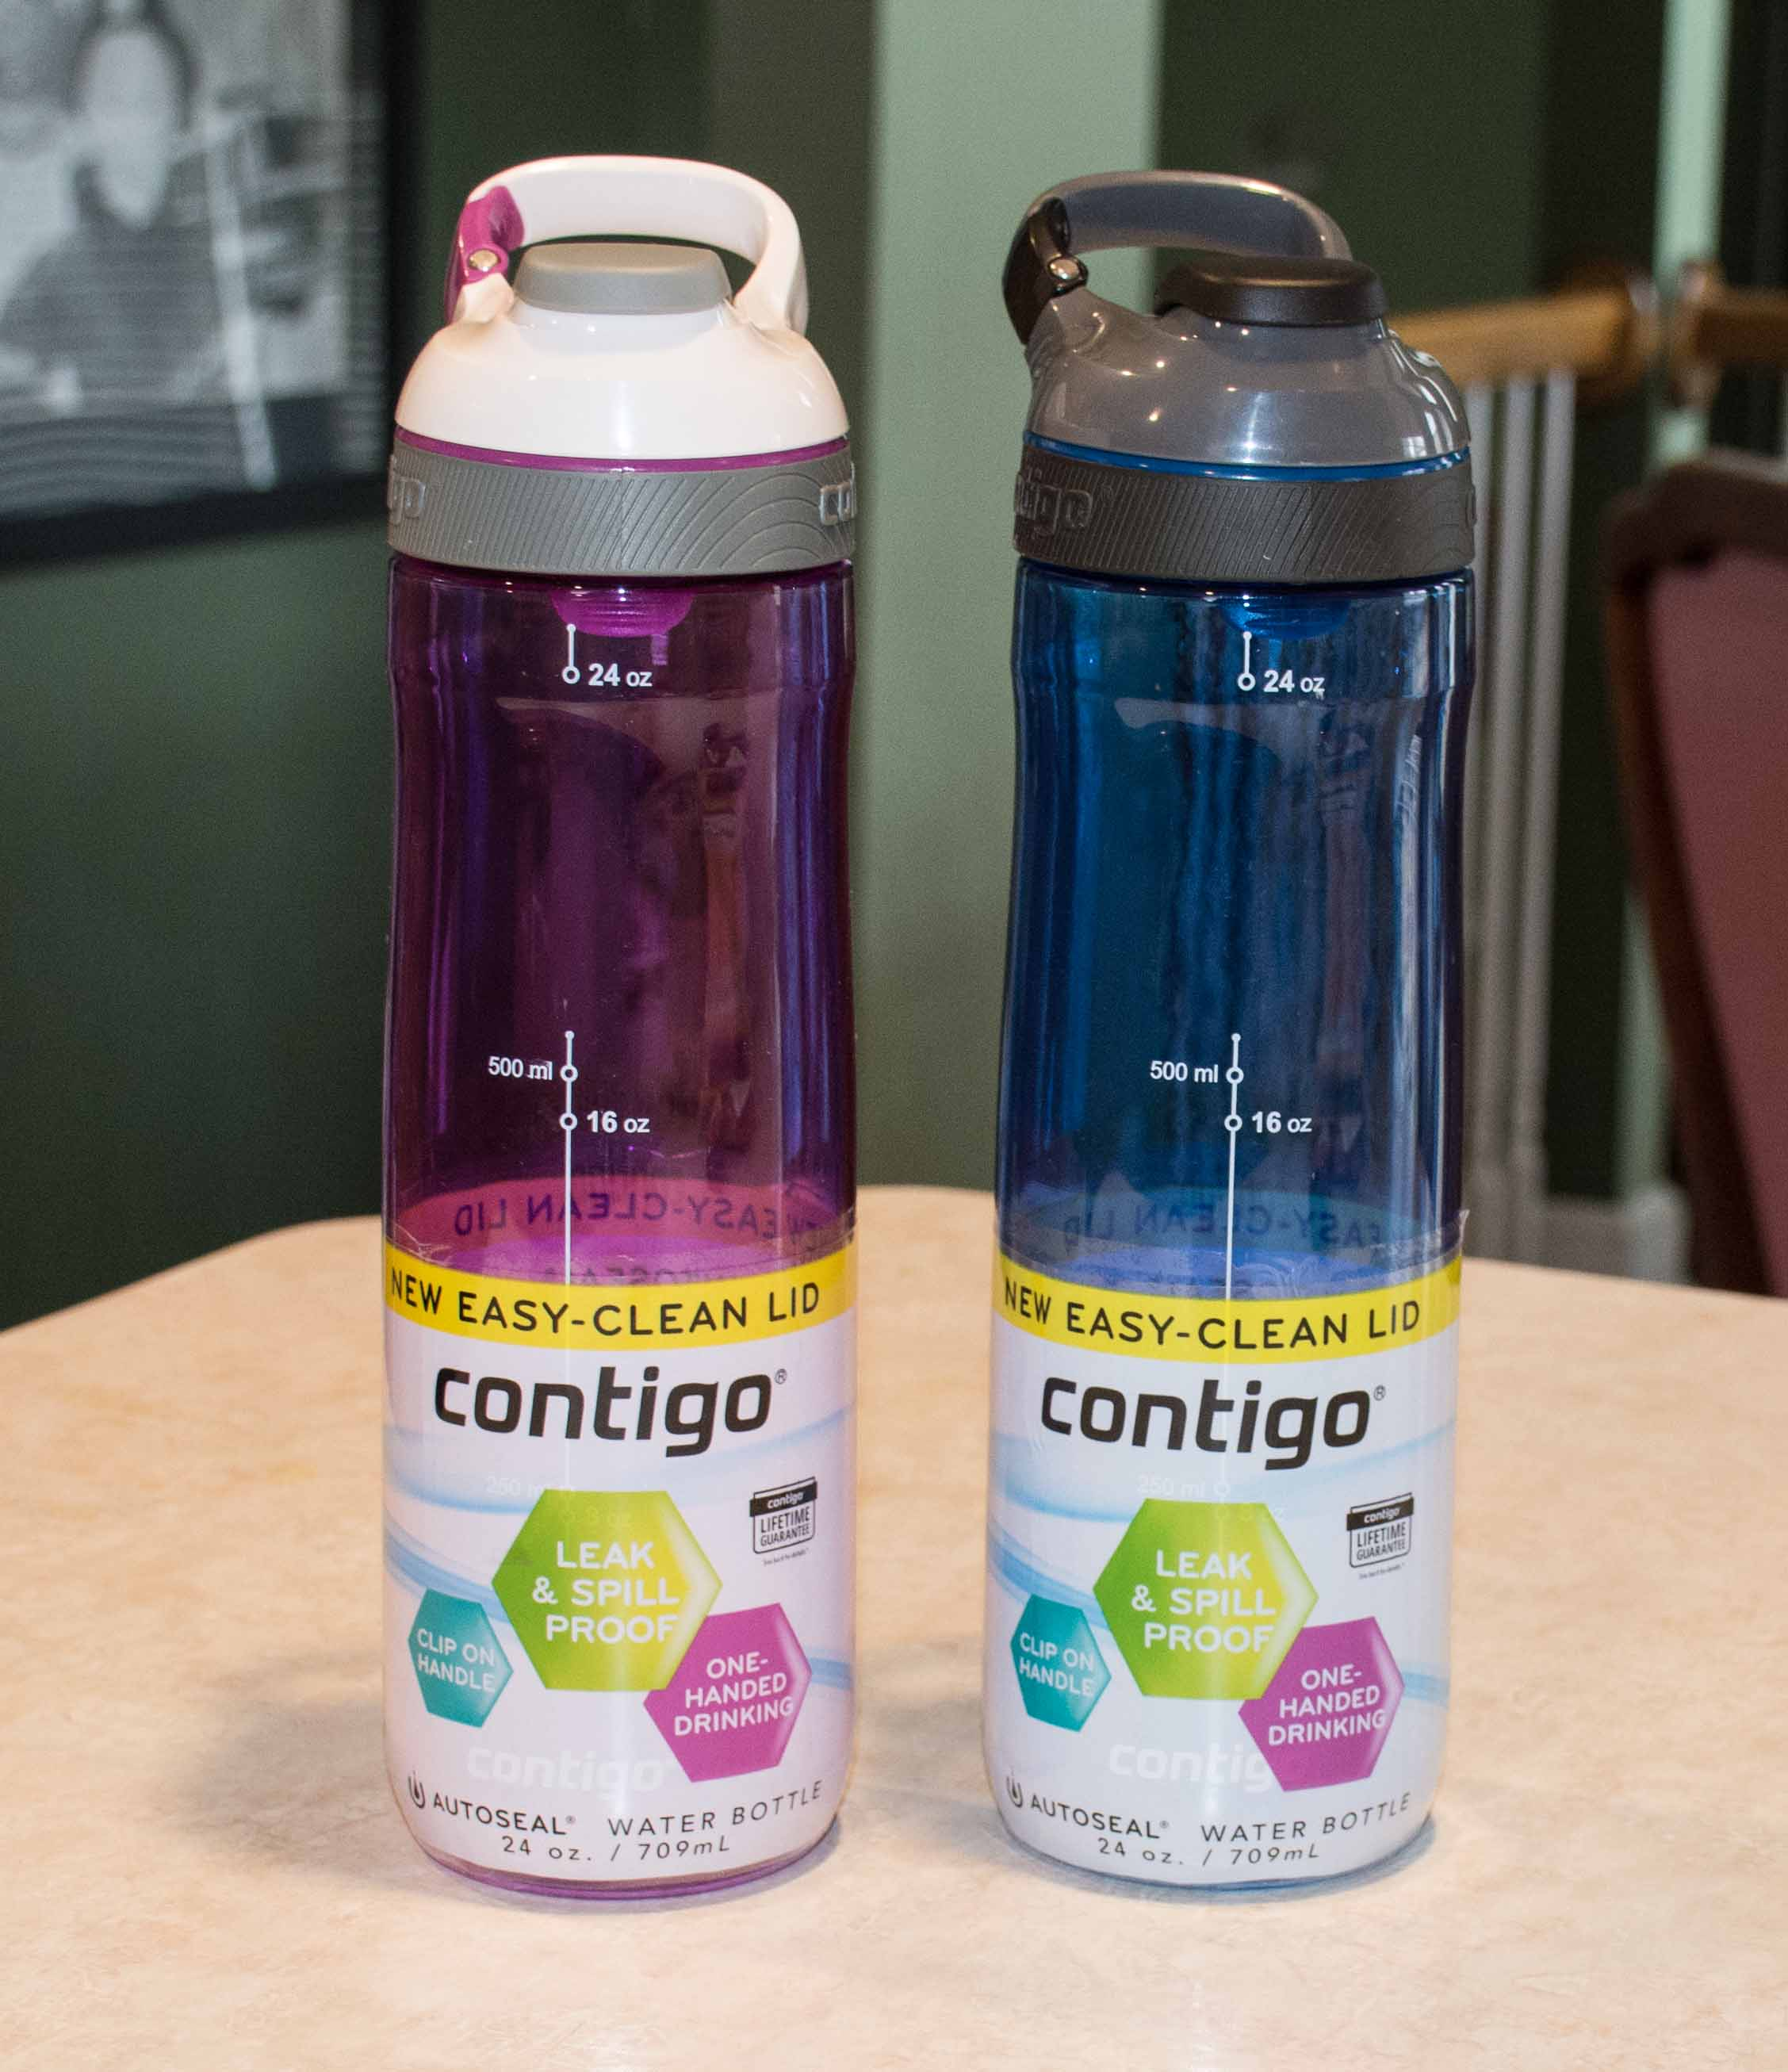 7d44b10dc9 Contigo Cortland Water Bottles With Autoseal Technology Samples received.  All opinions are my own. contigo1